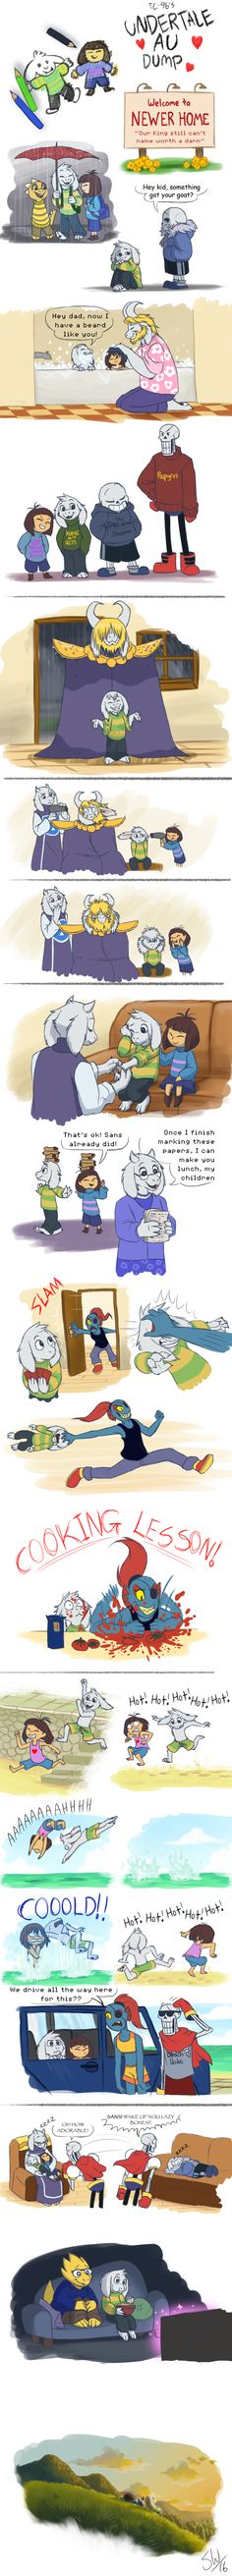 Undertale AU - SketchDump by TC-96 on DeviantArt